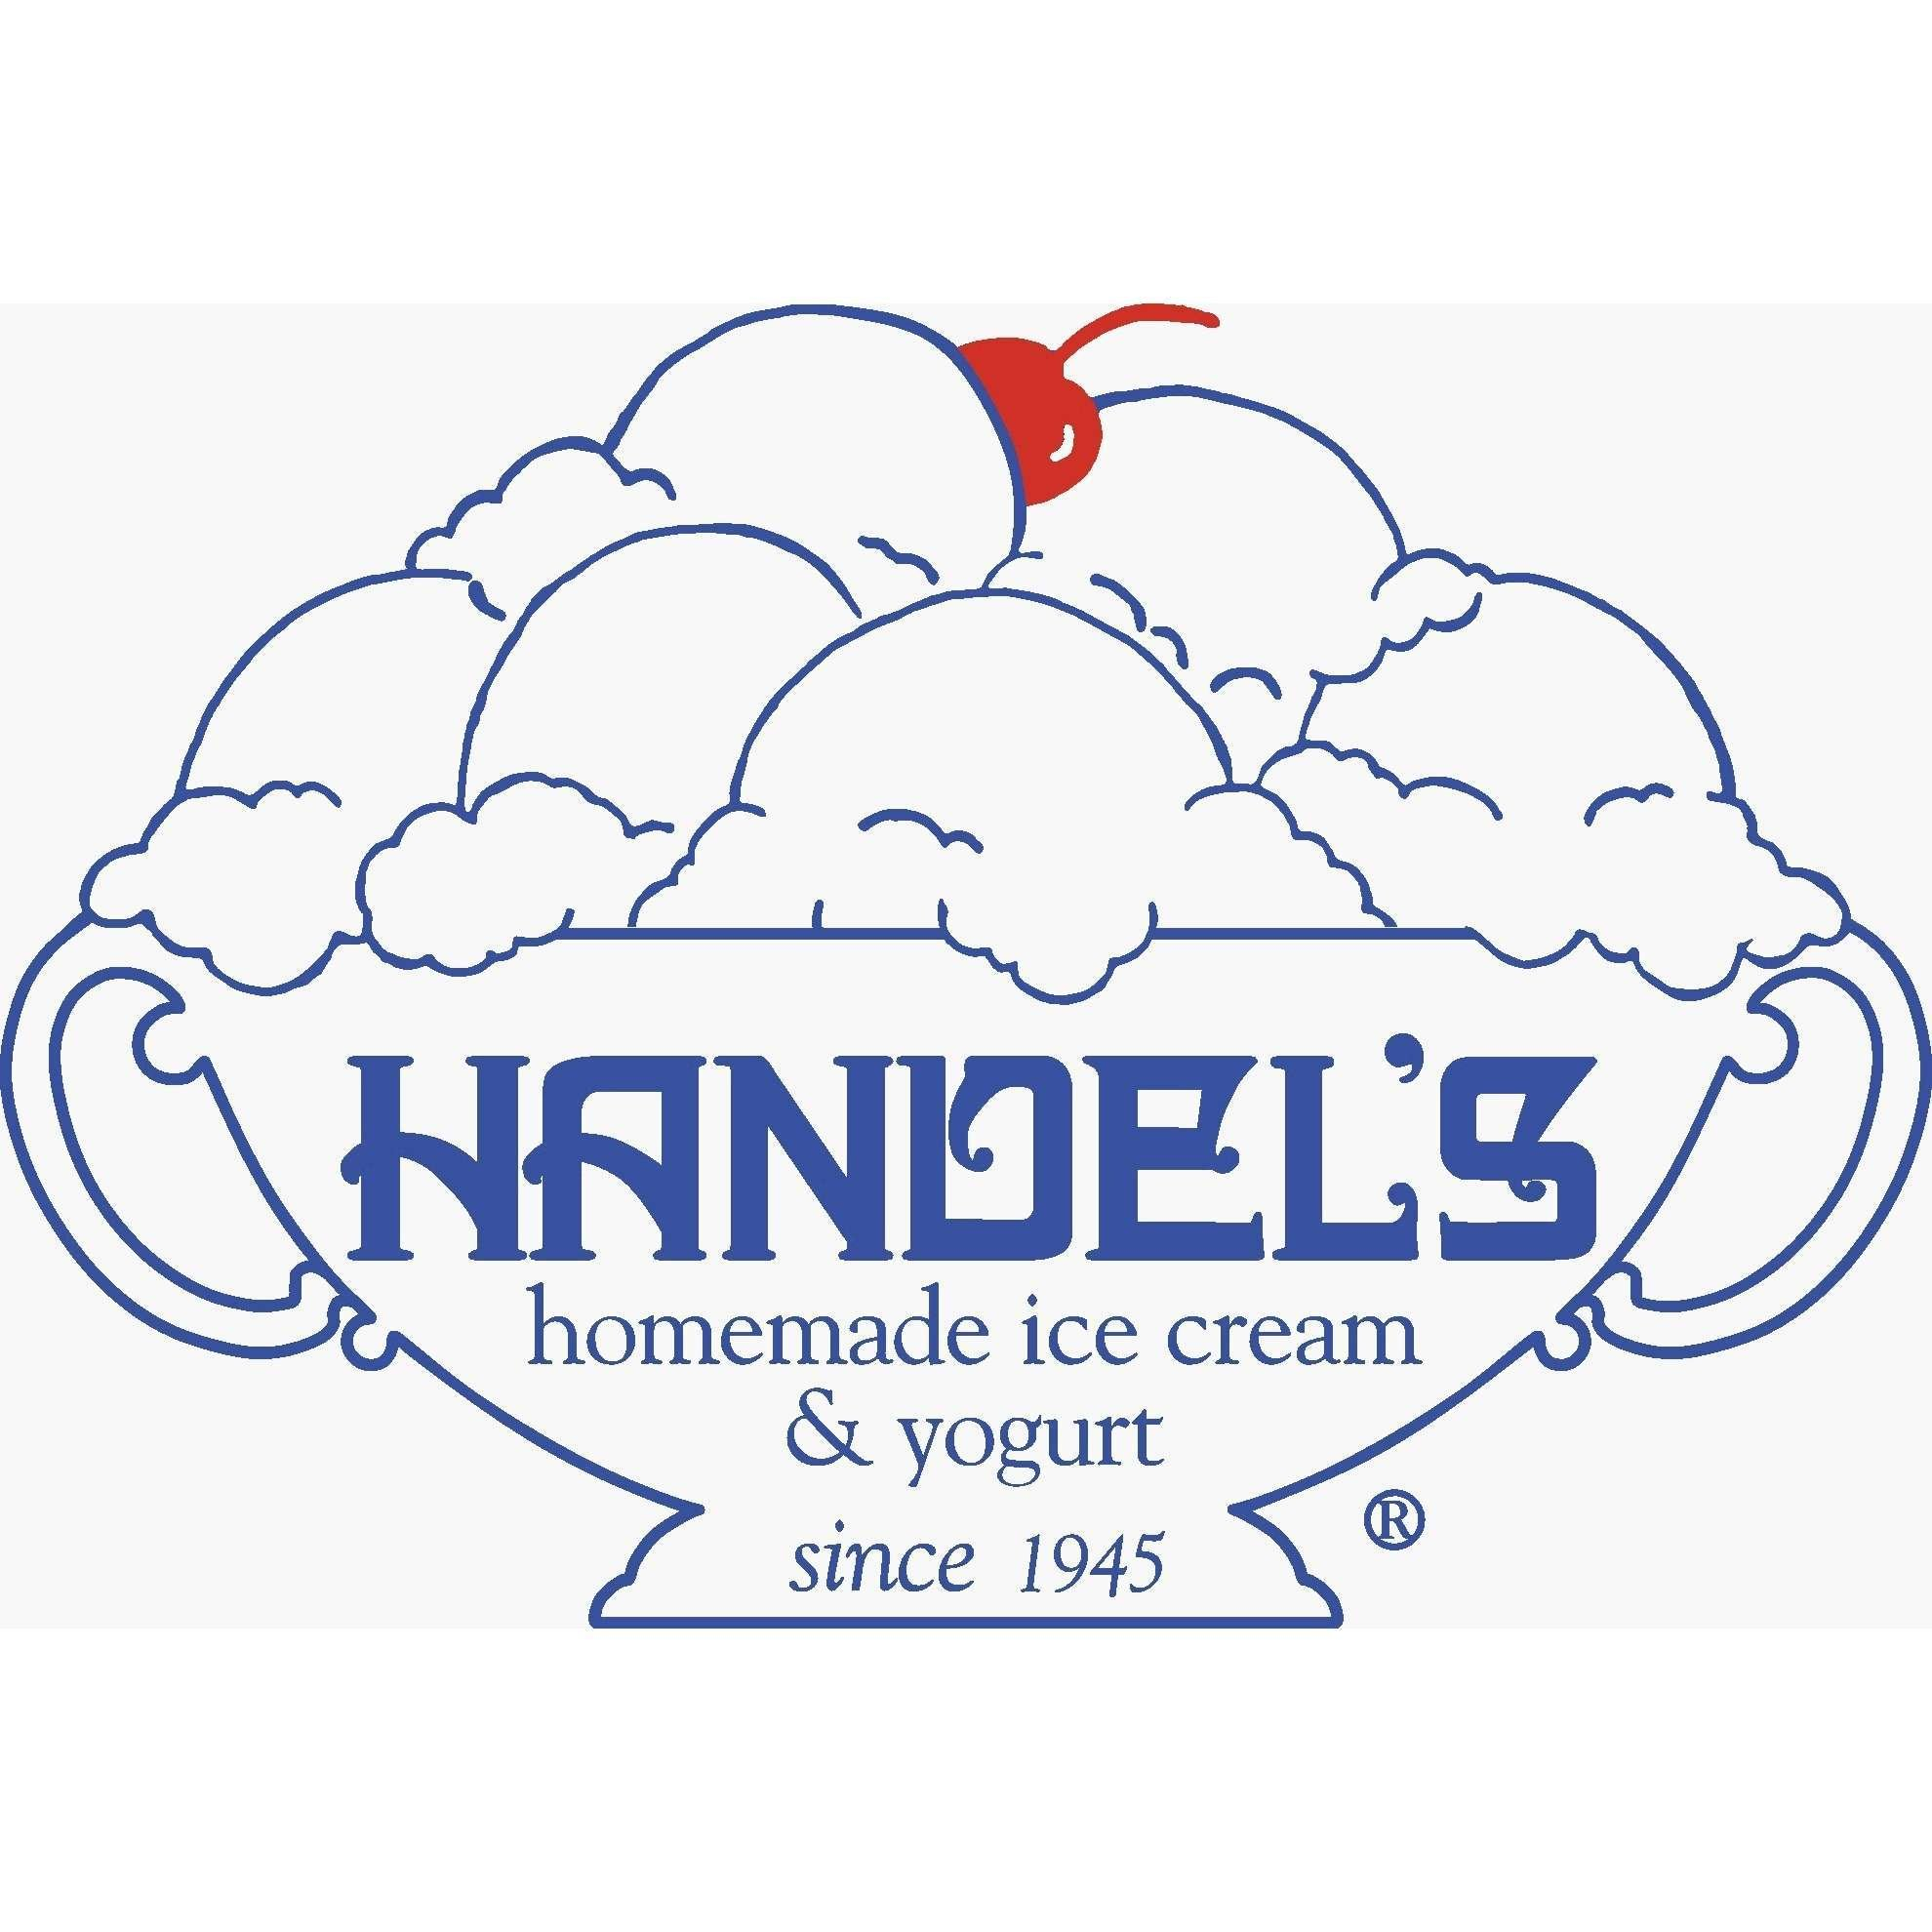 13 food places to go in the south bay handel's homemade ice cream medina handel's homemade ice cream hiring